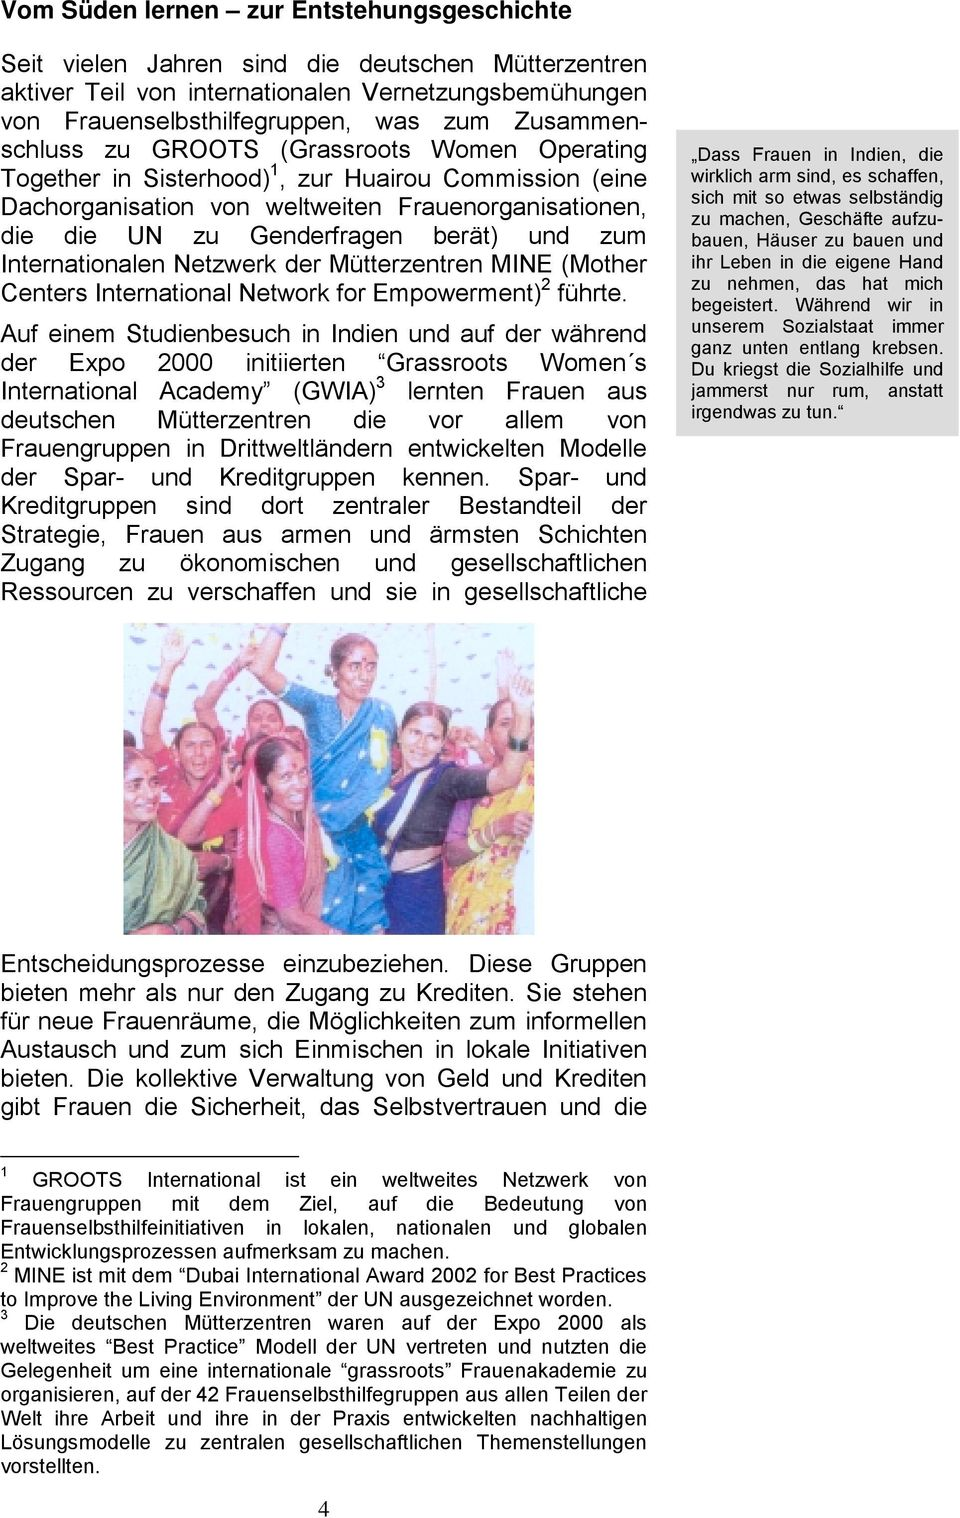 und zum Internationalen Netzwerk der Mütterzentren MINE (Mother Centers International Network for Empowerment) 2 führte.